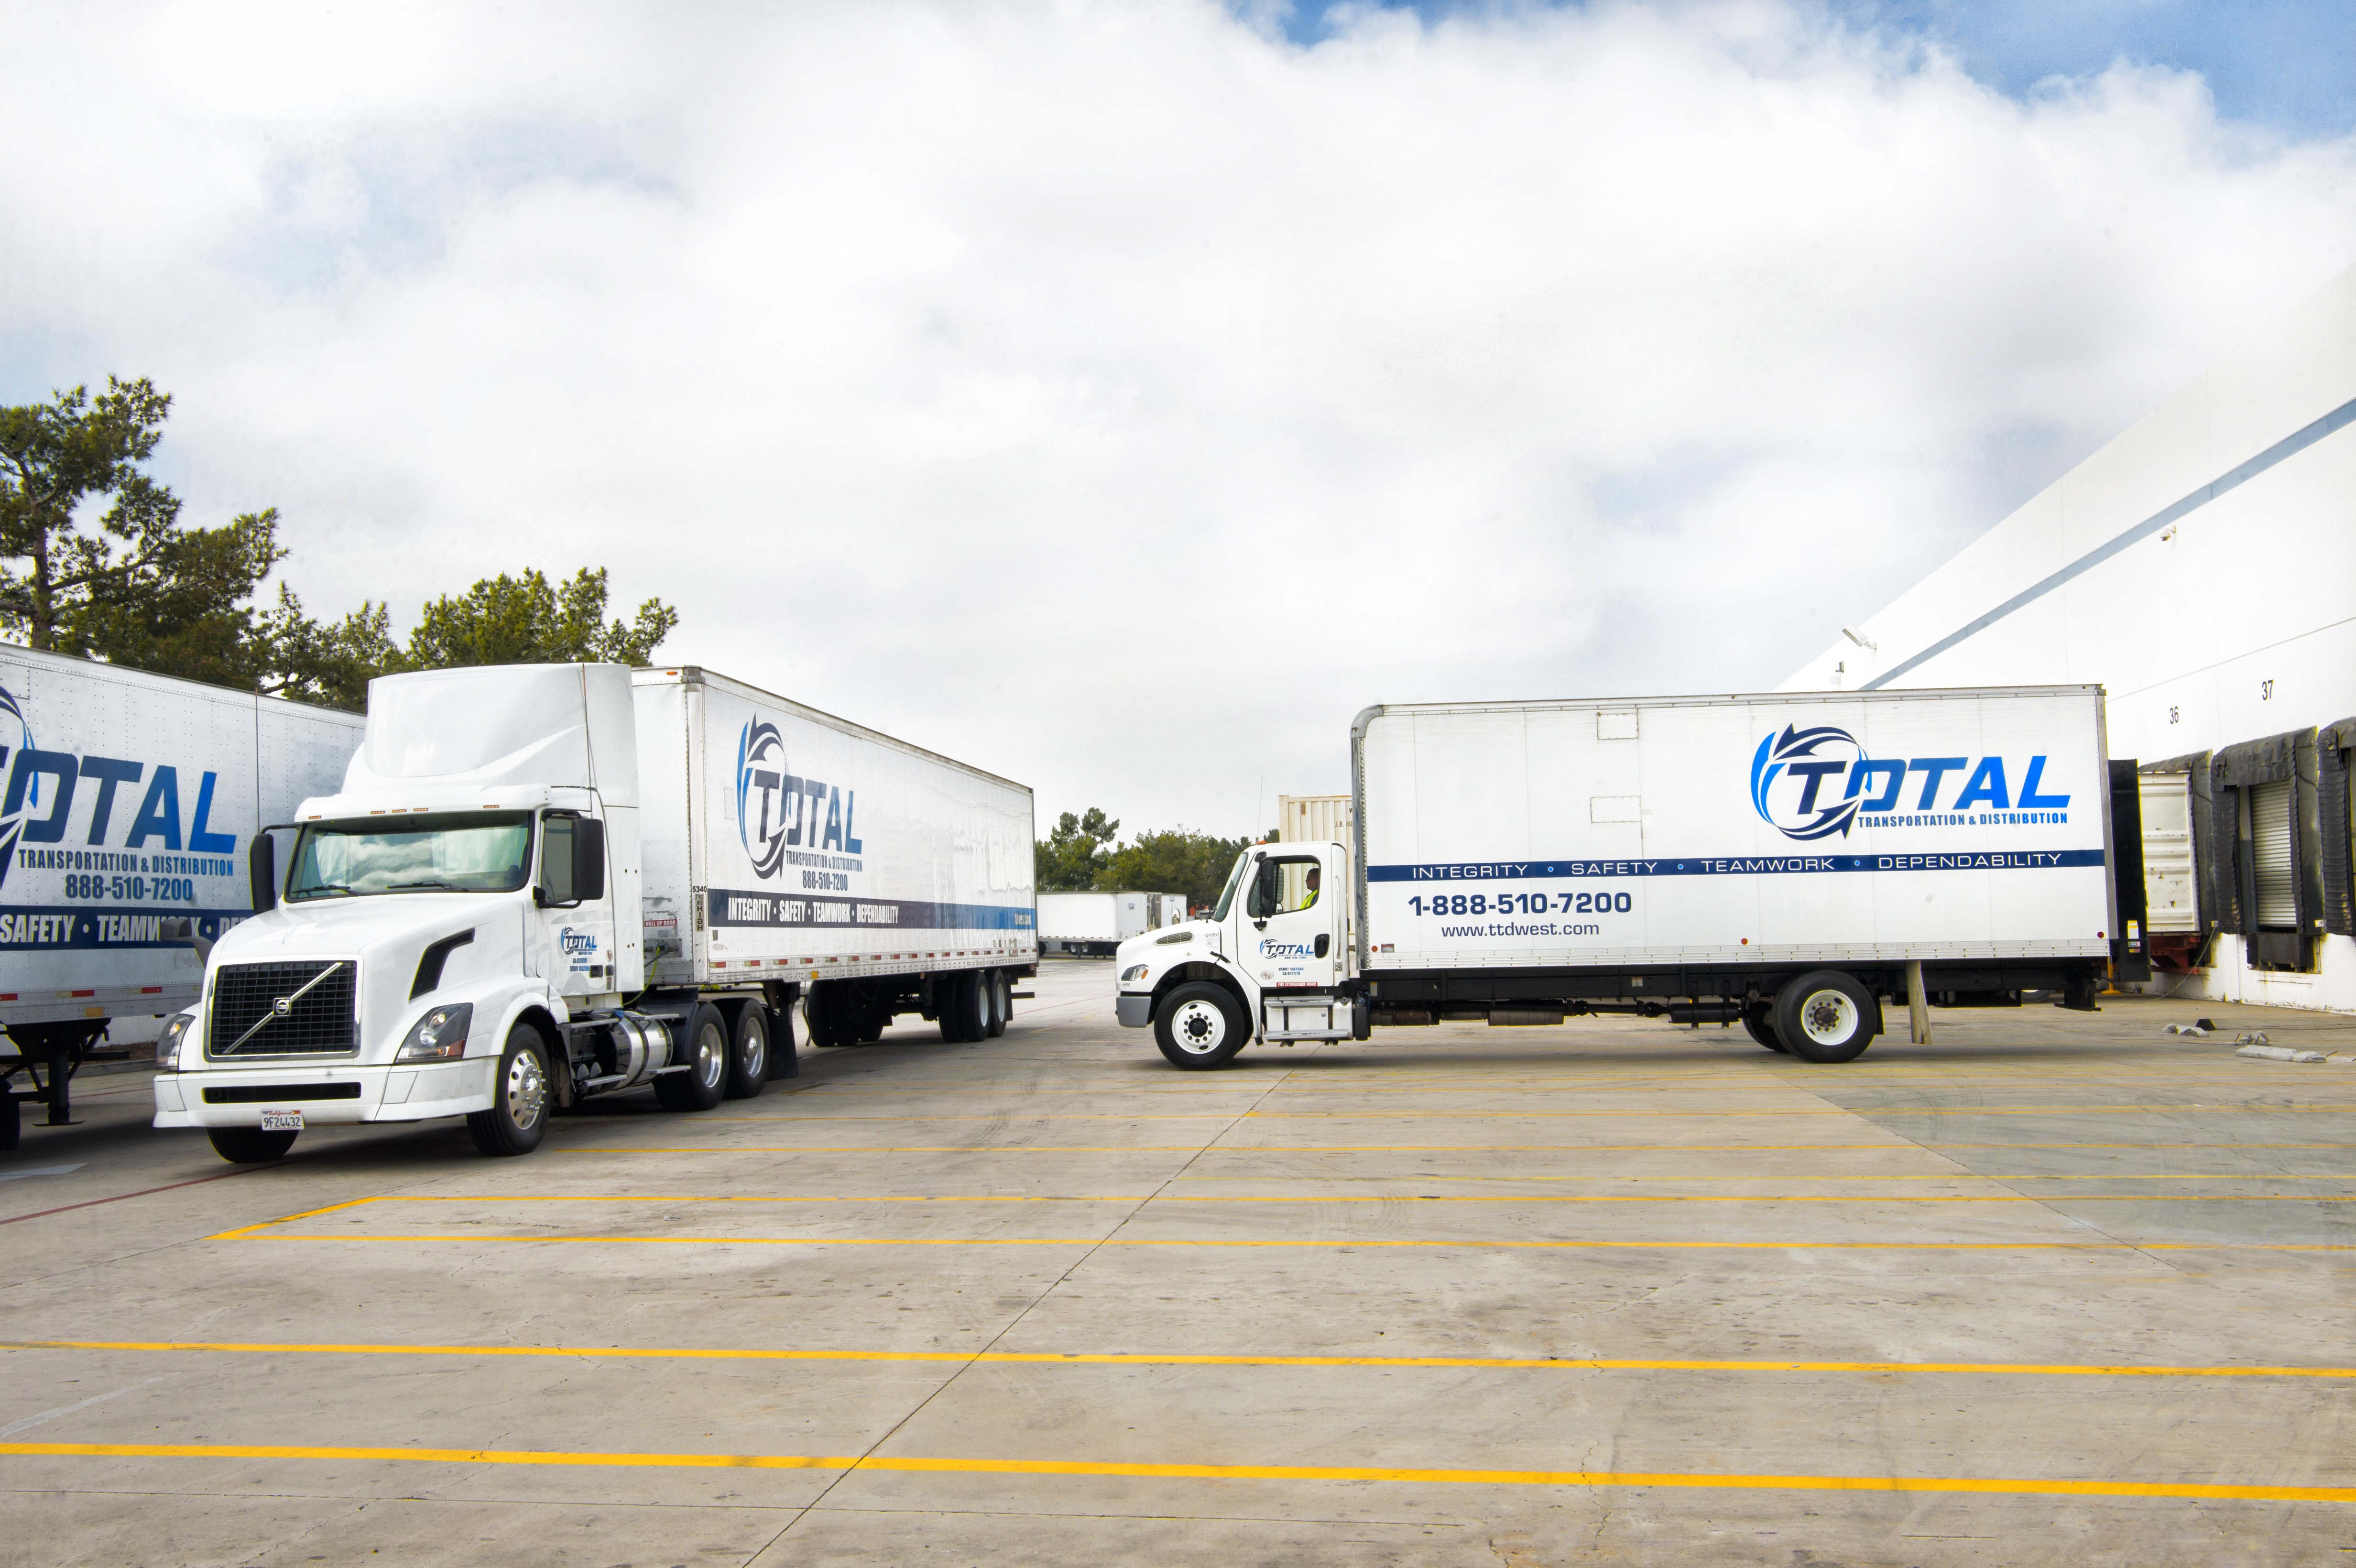 Total Transportation and Distribution Inc  | LinkedIn